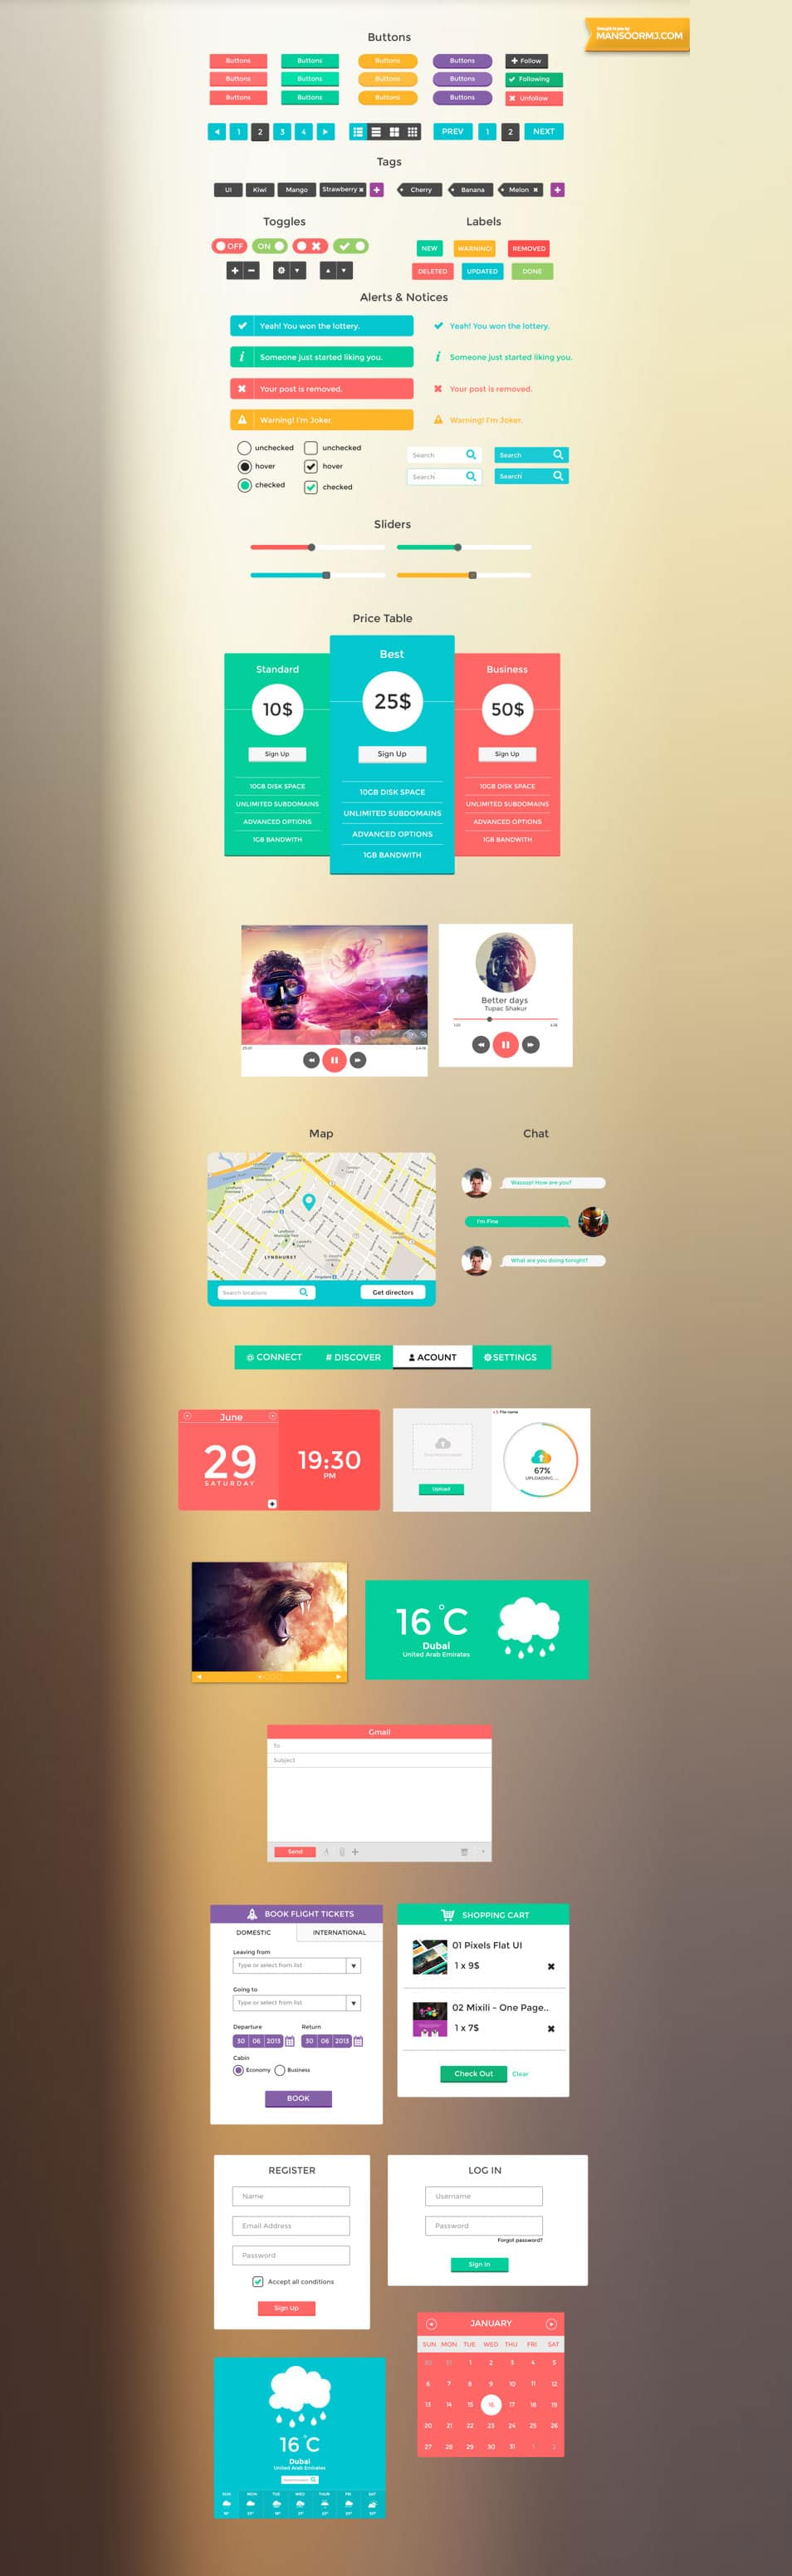 SmoothBerry Free UI Kit